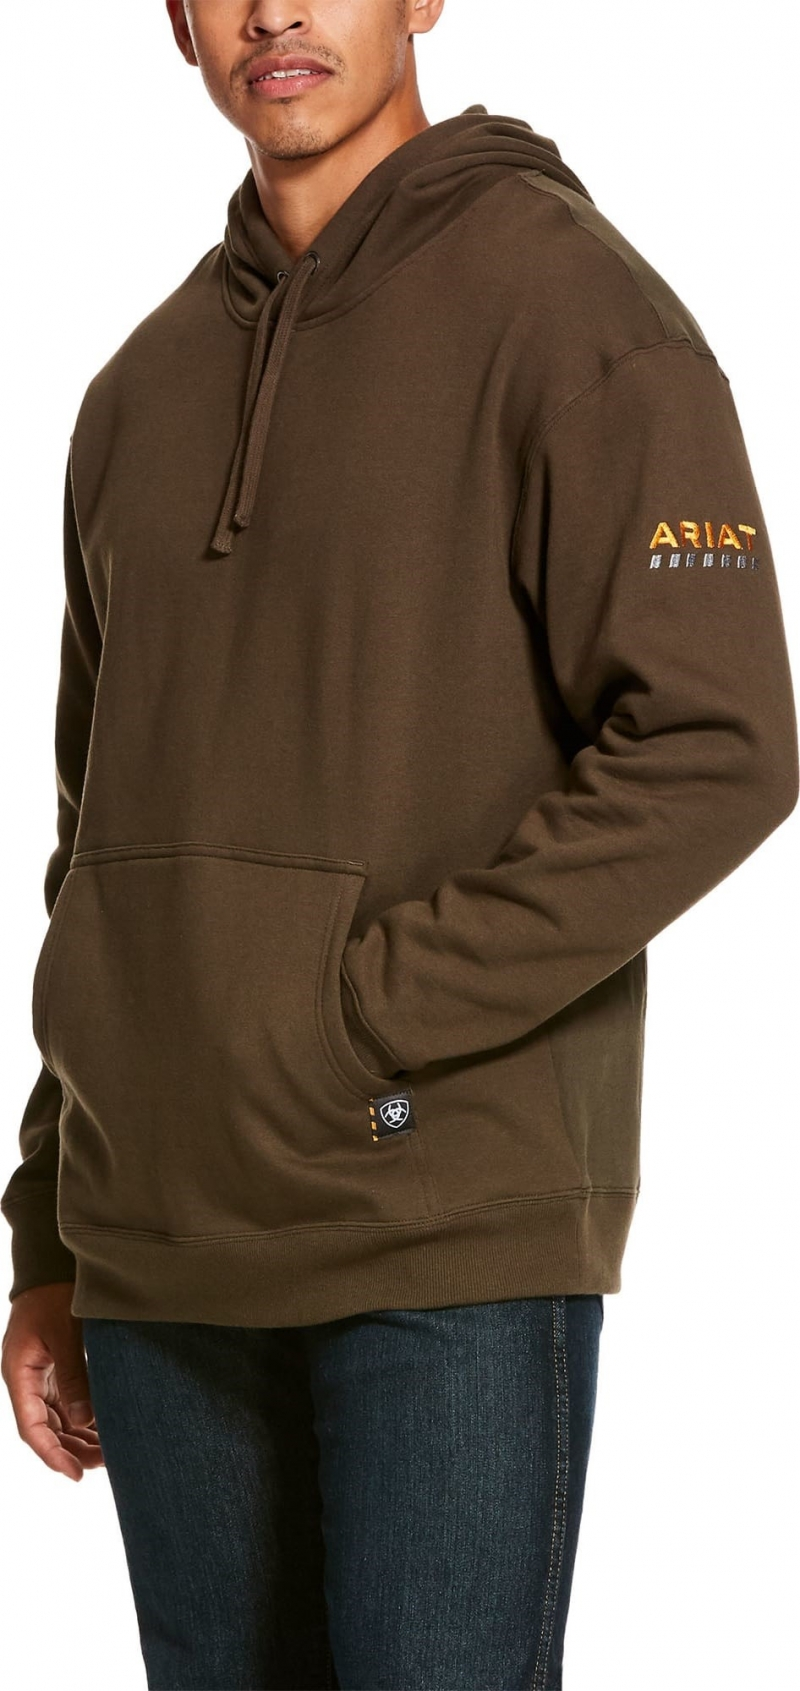 Ariat Rebar Workman Pullover Hooded Sweatshirt - Wren